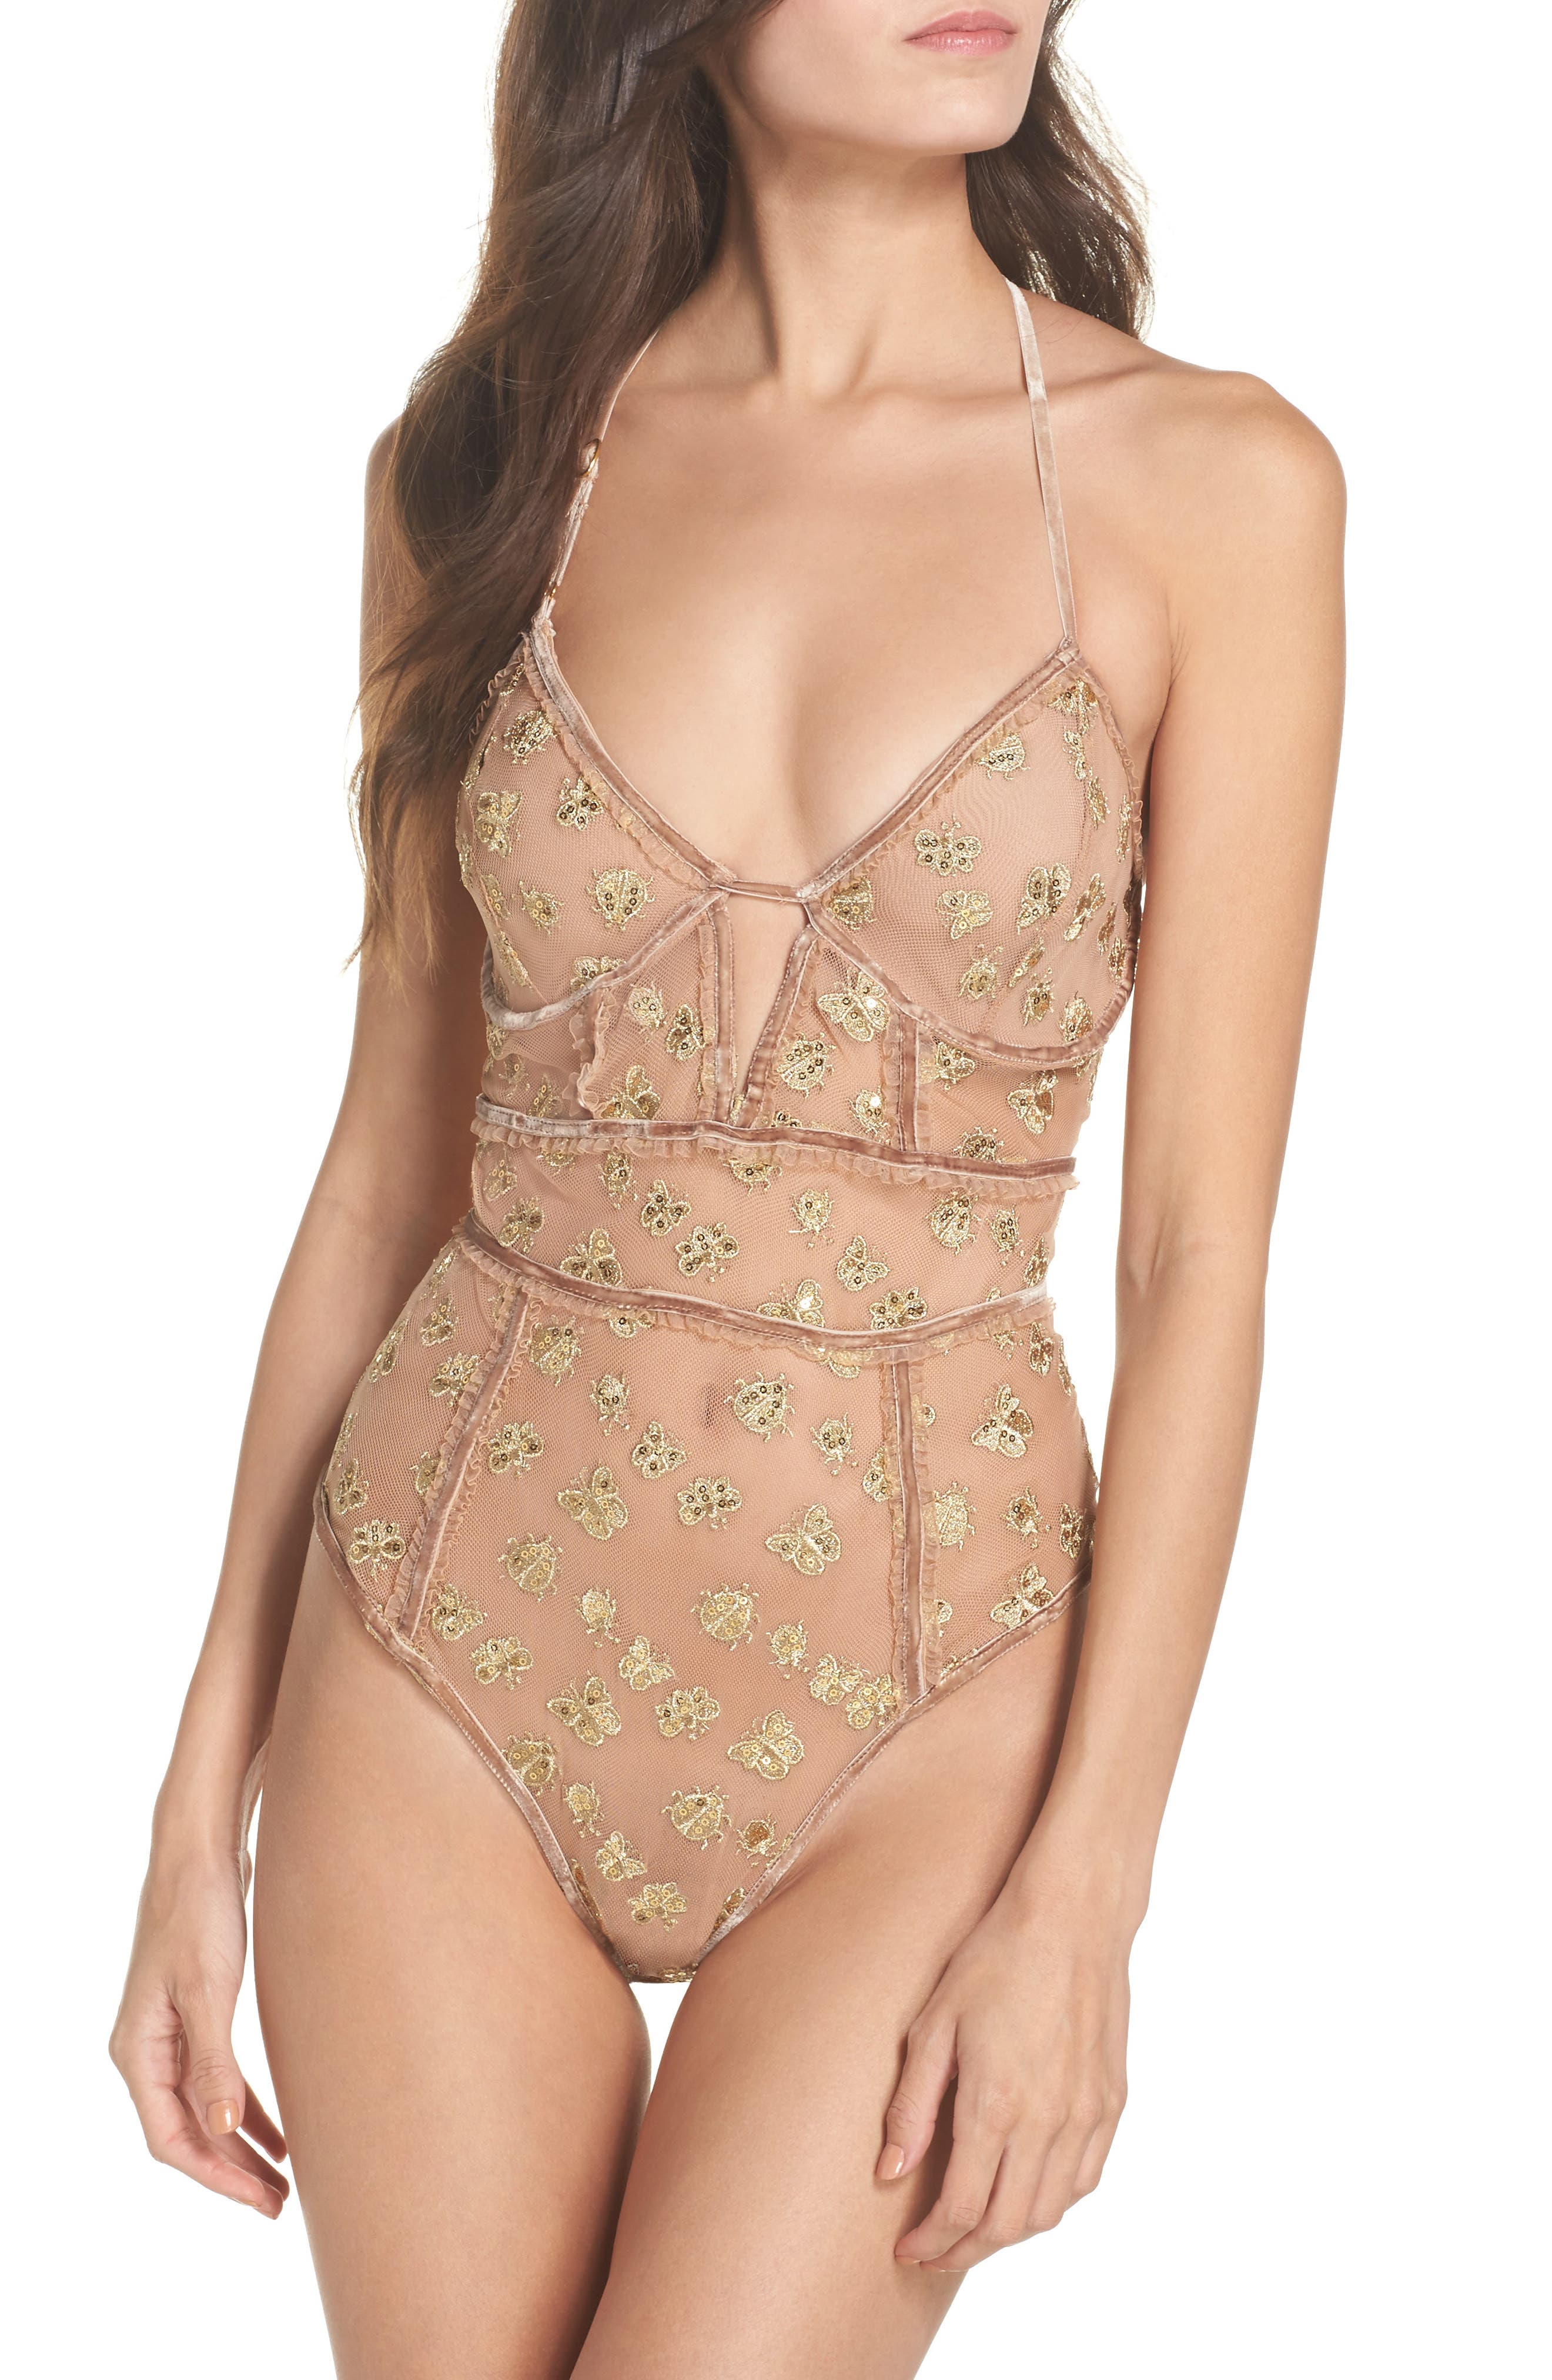 Golden Garden Embroidered Bodysuit,                             Main thumbnail 1, color,                             Bee